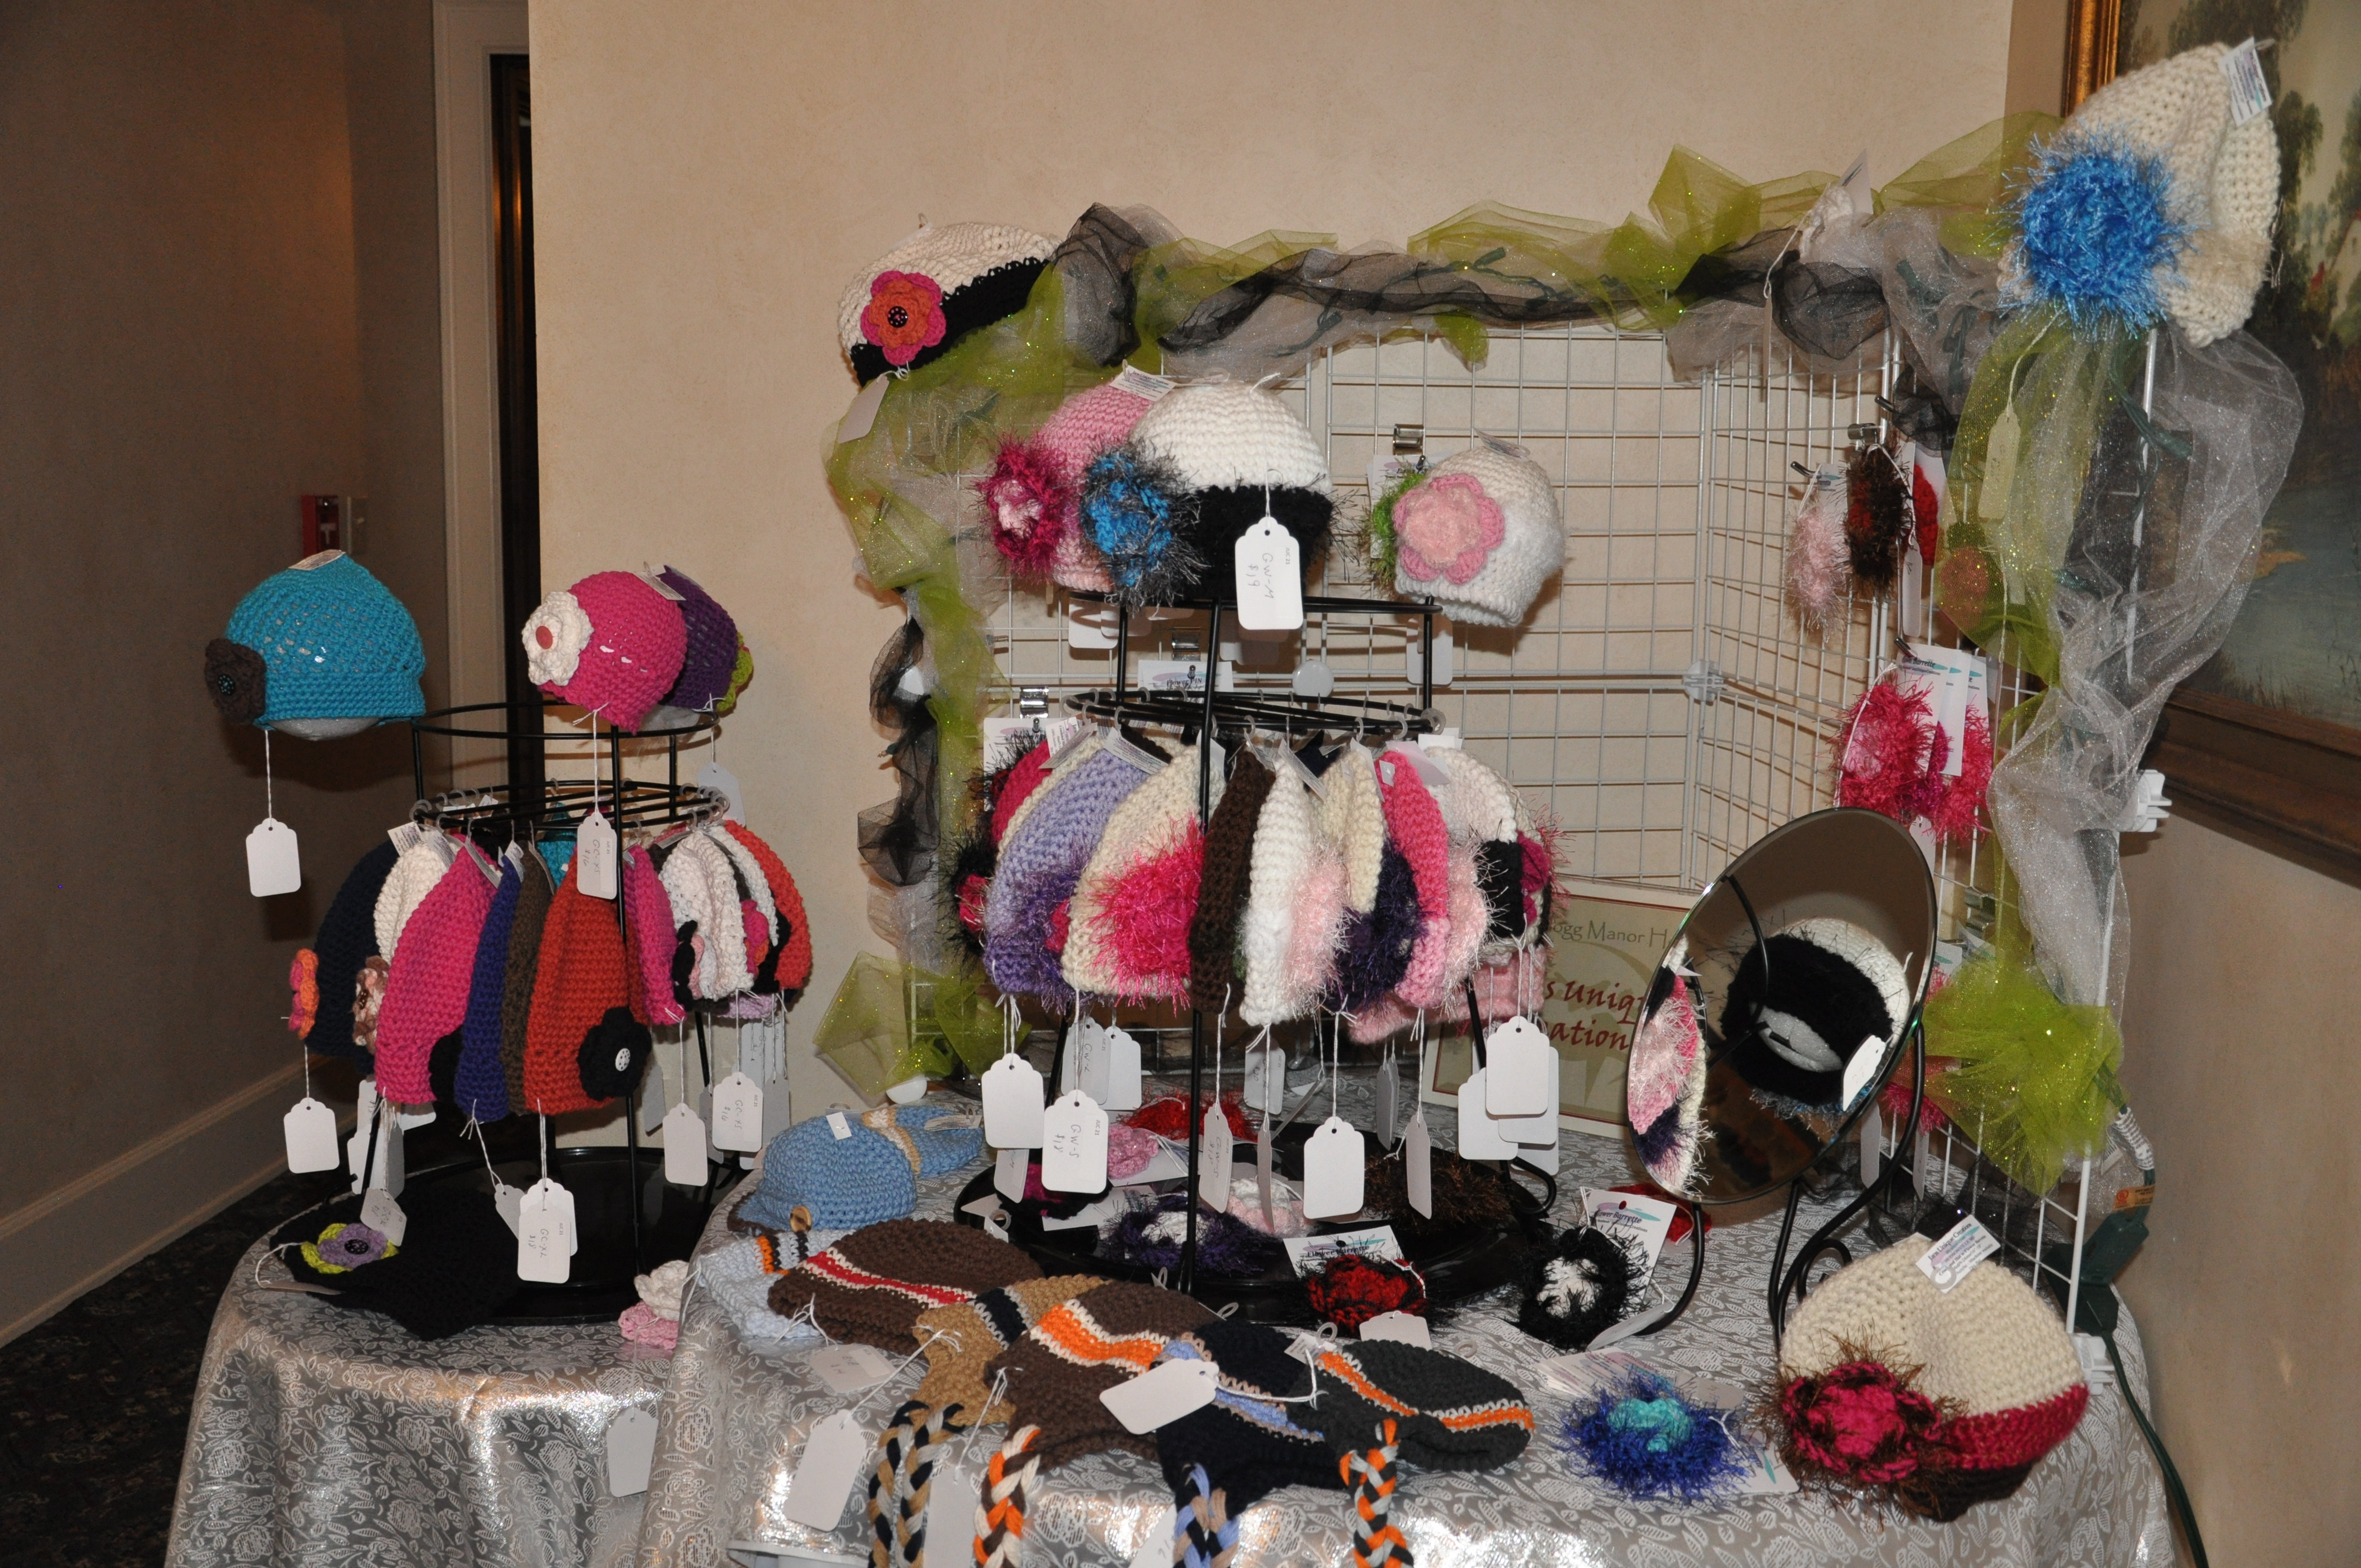 Holiday Walk Vendor Items-knitted hats